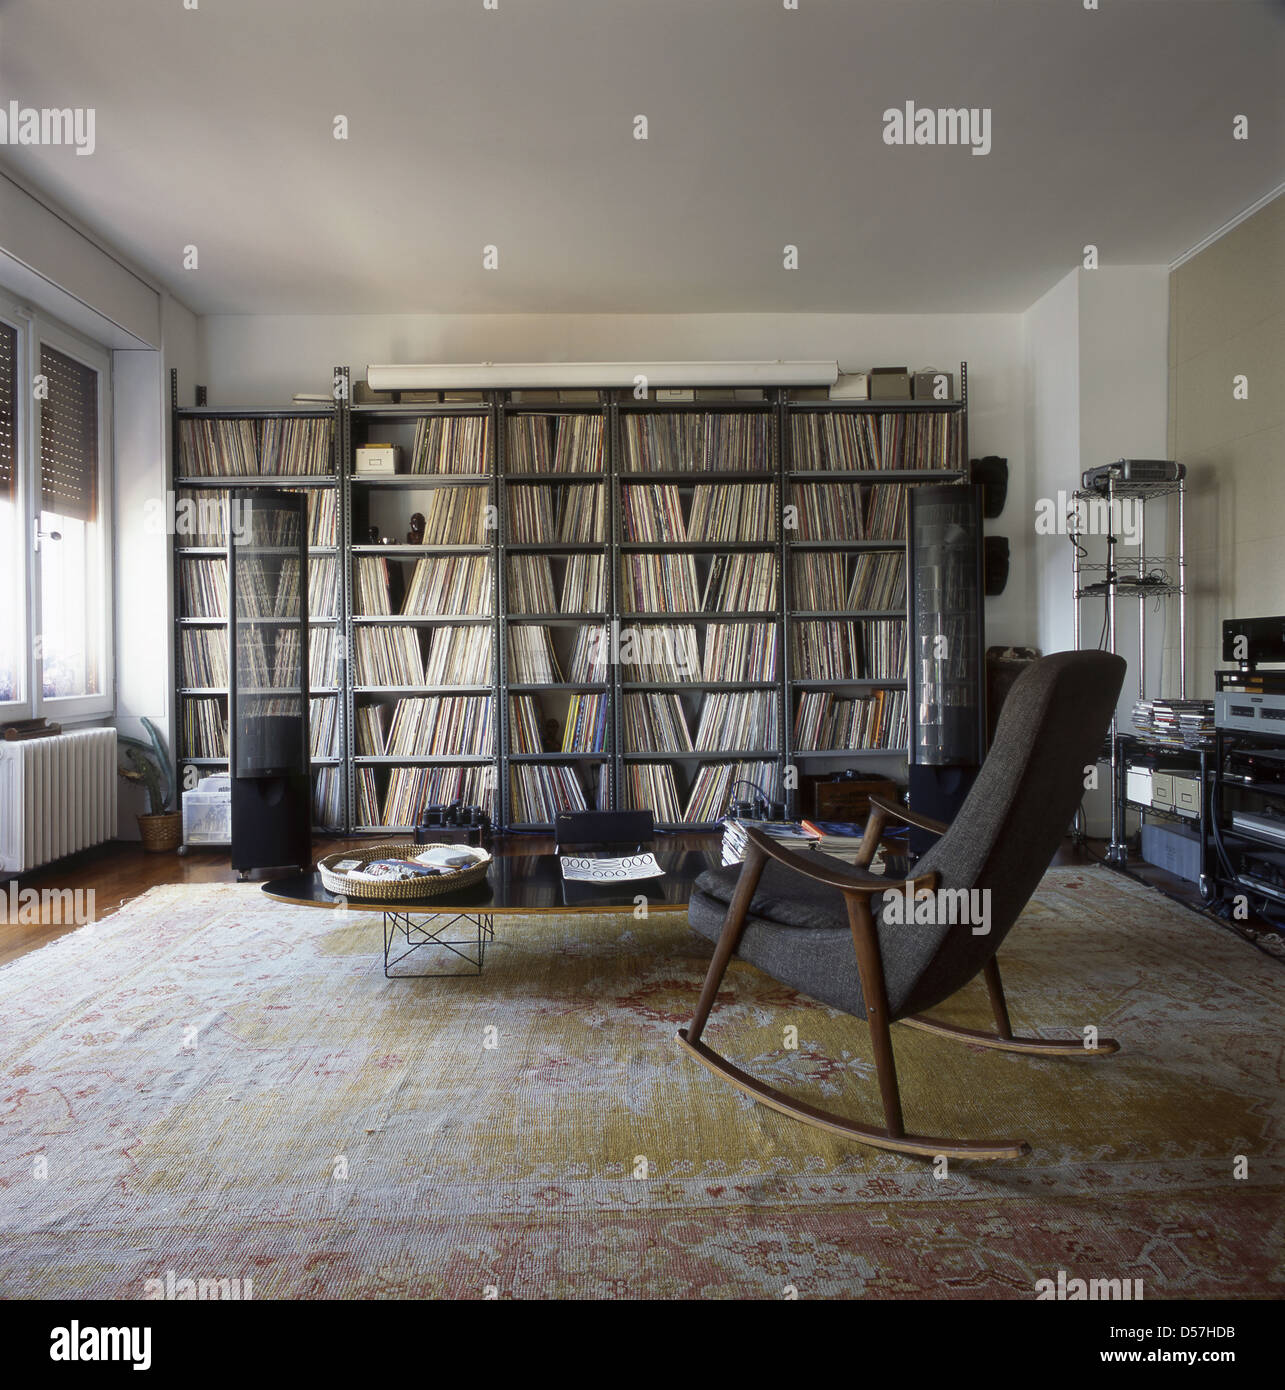 Interior Of A Living Room In An Apartment With A Rocking Chair And  Bookshelves With Plenty Of Vinyl Records And A Professional Stereo Equipment